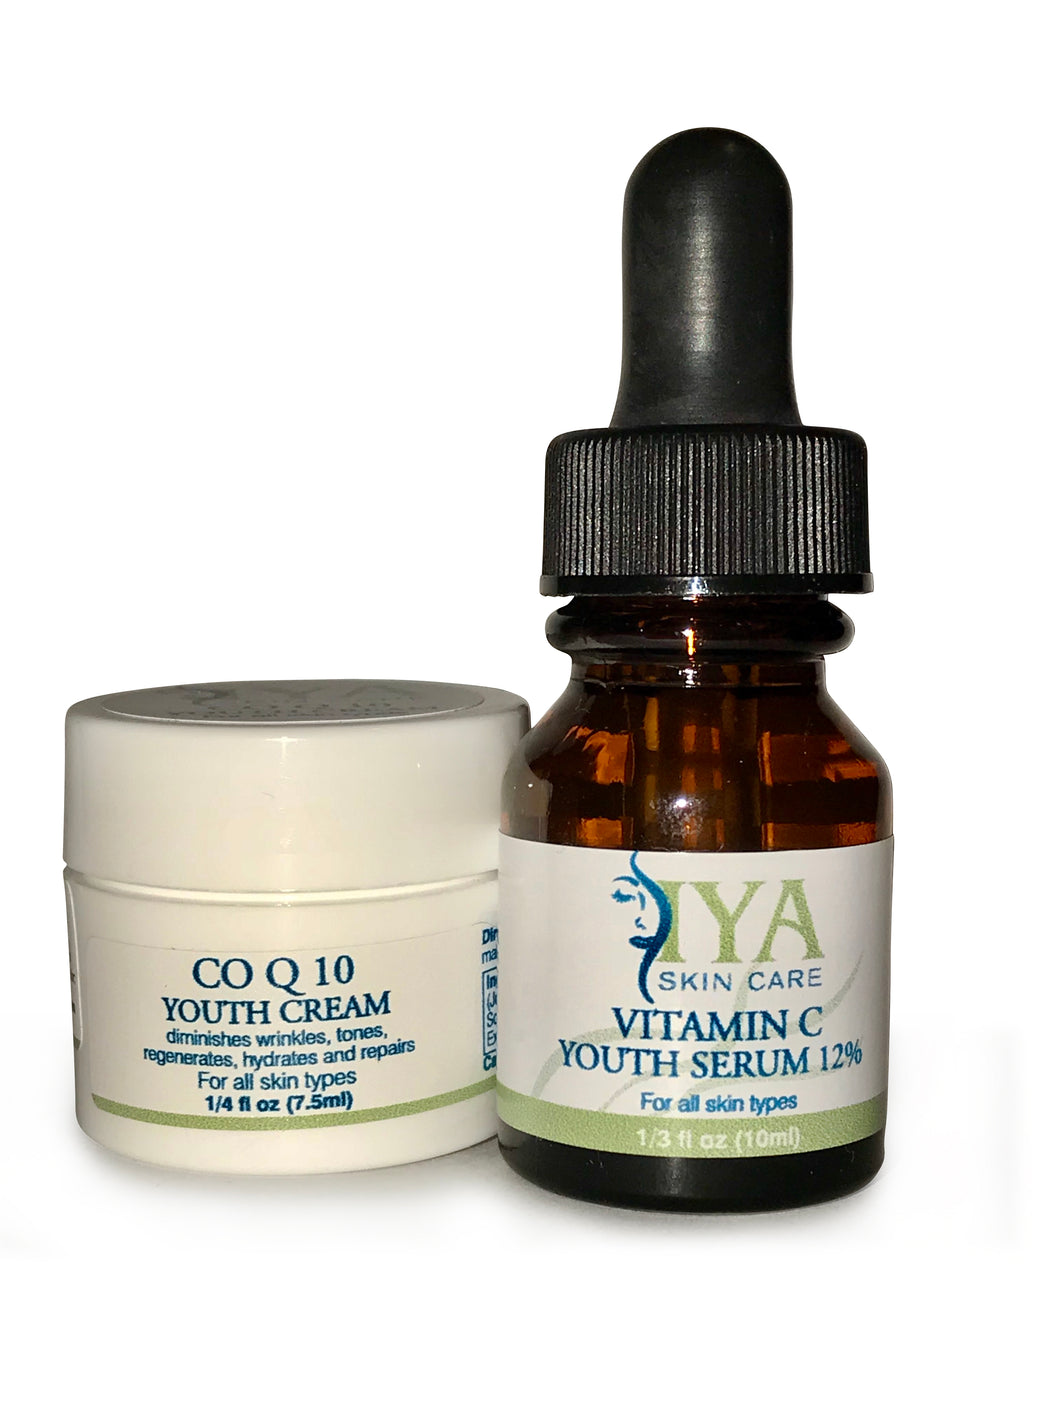 CO Q 10 & Vitamin C Antioxidant Anti-Aging Set (Value Set - Save 15%)